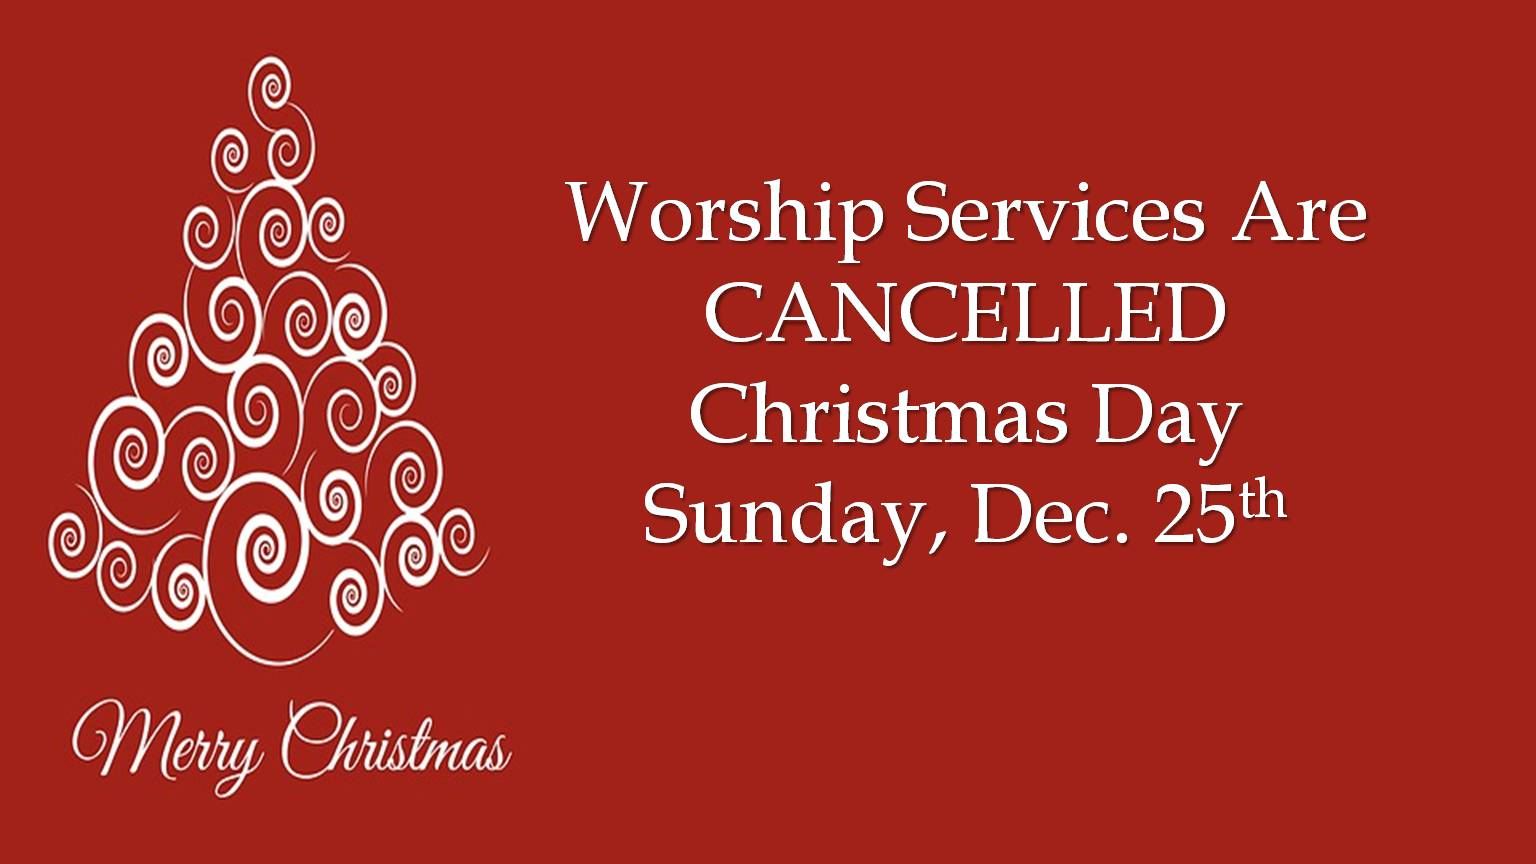 Christmas-Day-Services-Cancelled-2016-1